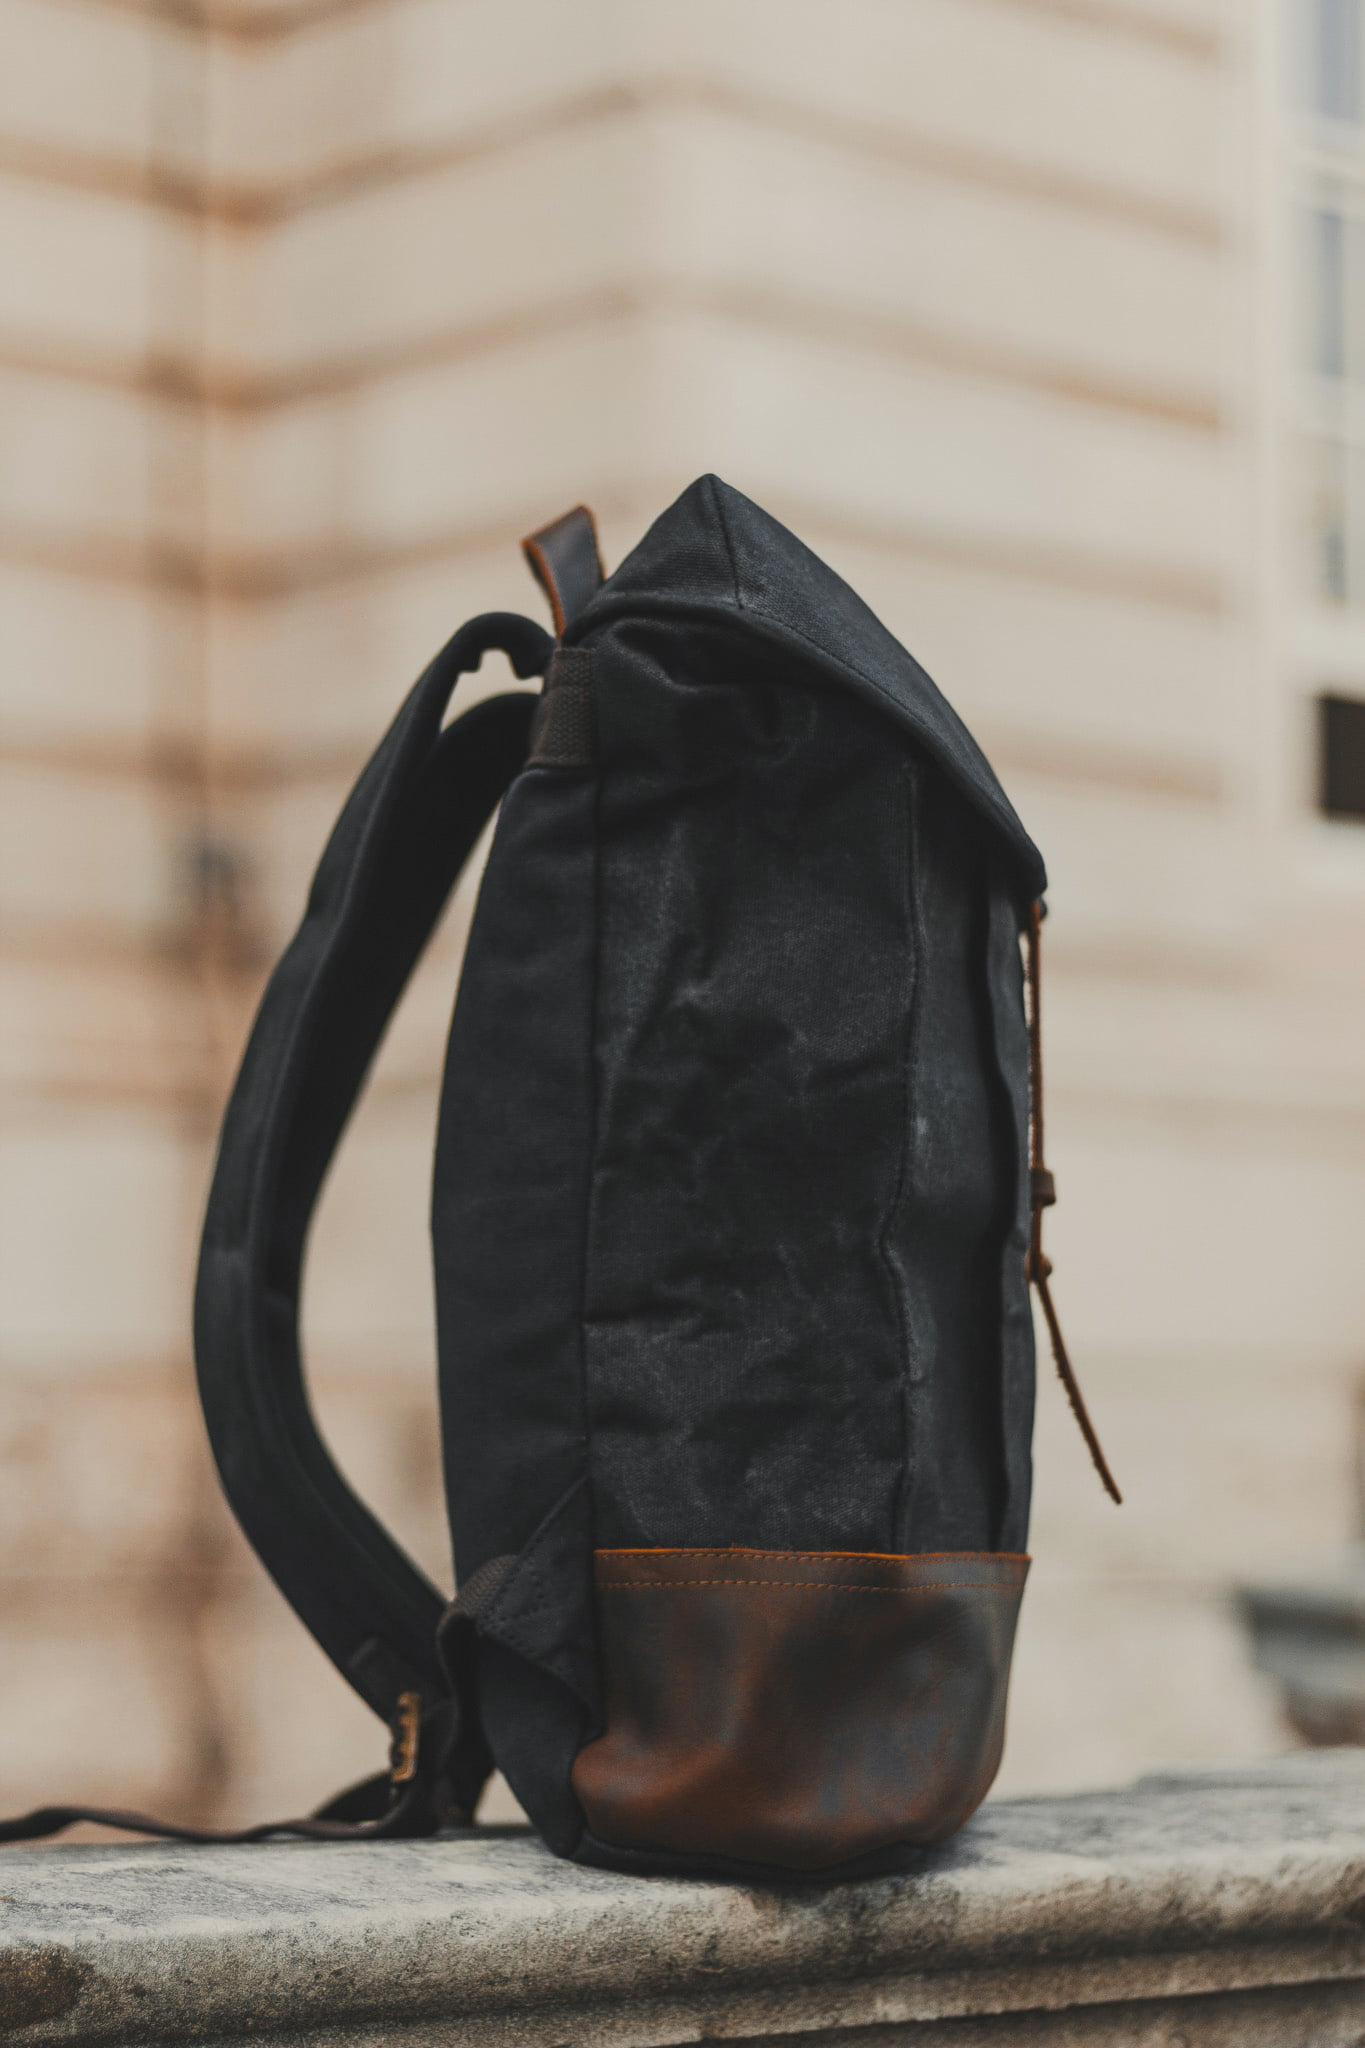 Waxed Cotton Canvas and Leather Backpack Rucksack - Menswear Denim Rugged Style Outfit - The Kingston in Graphite by Oldfield